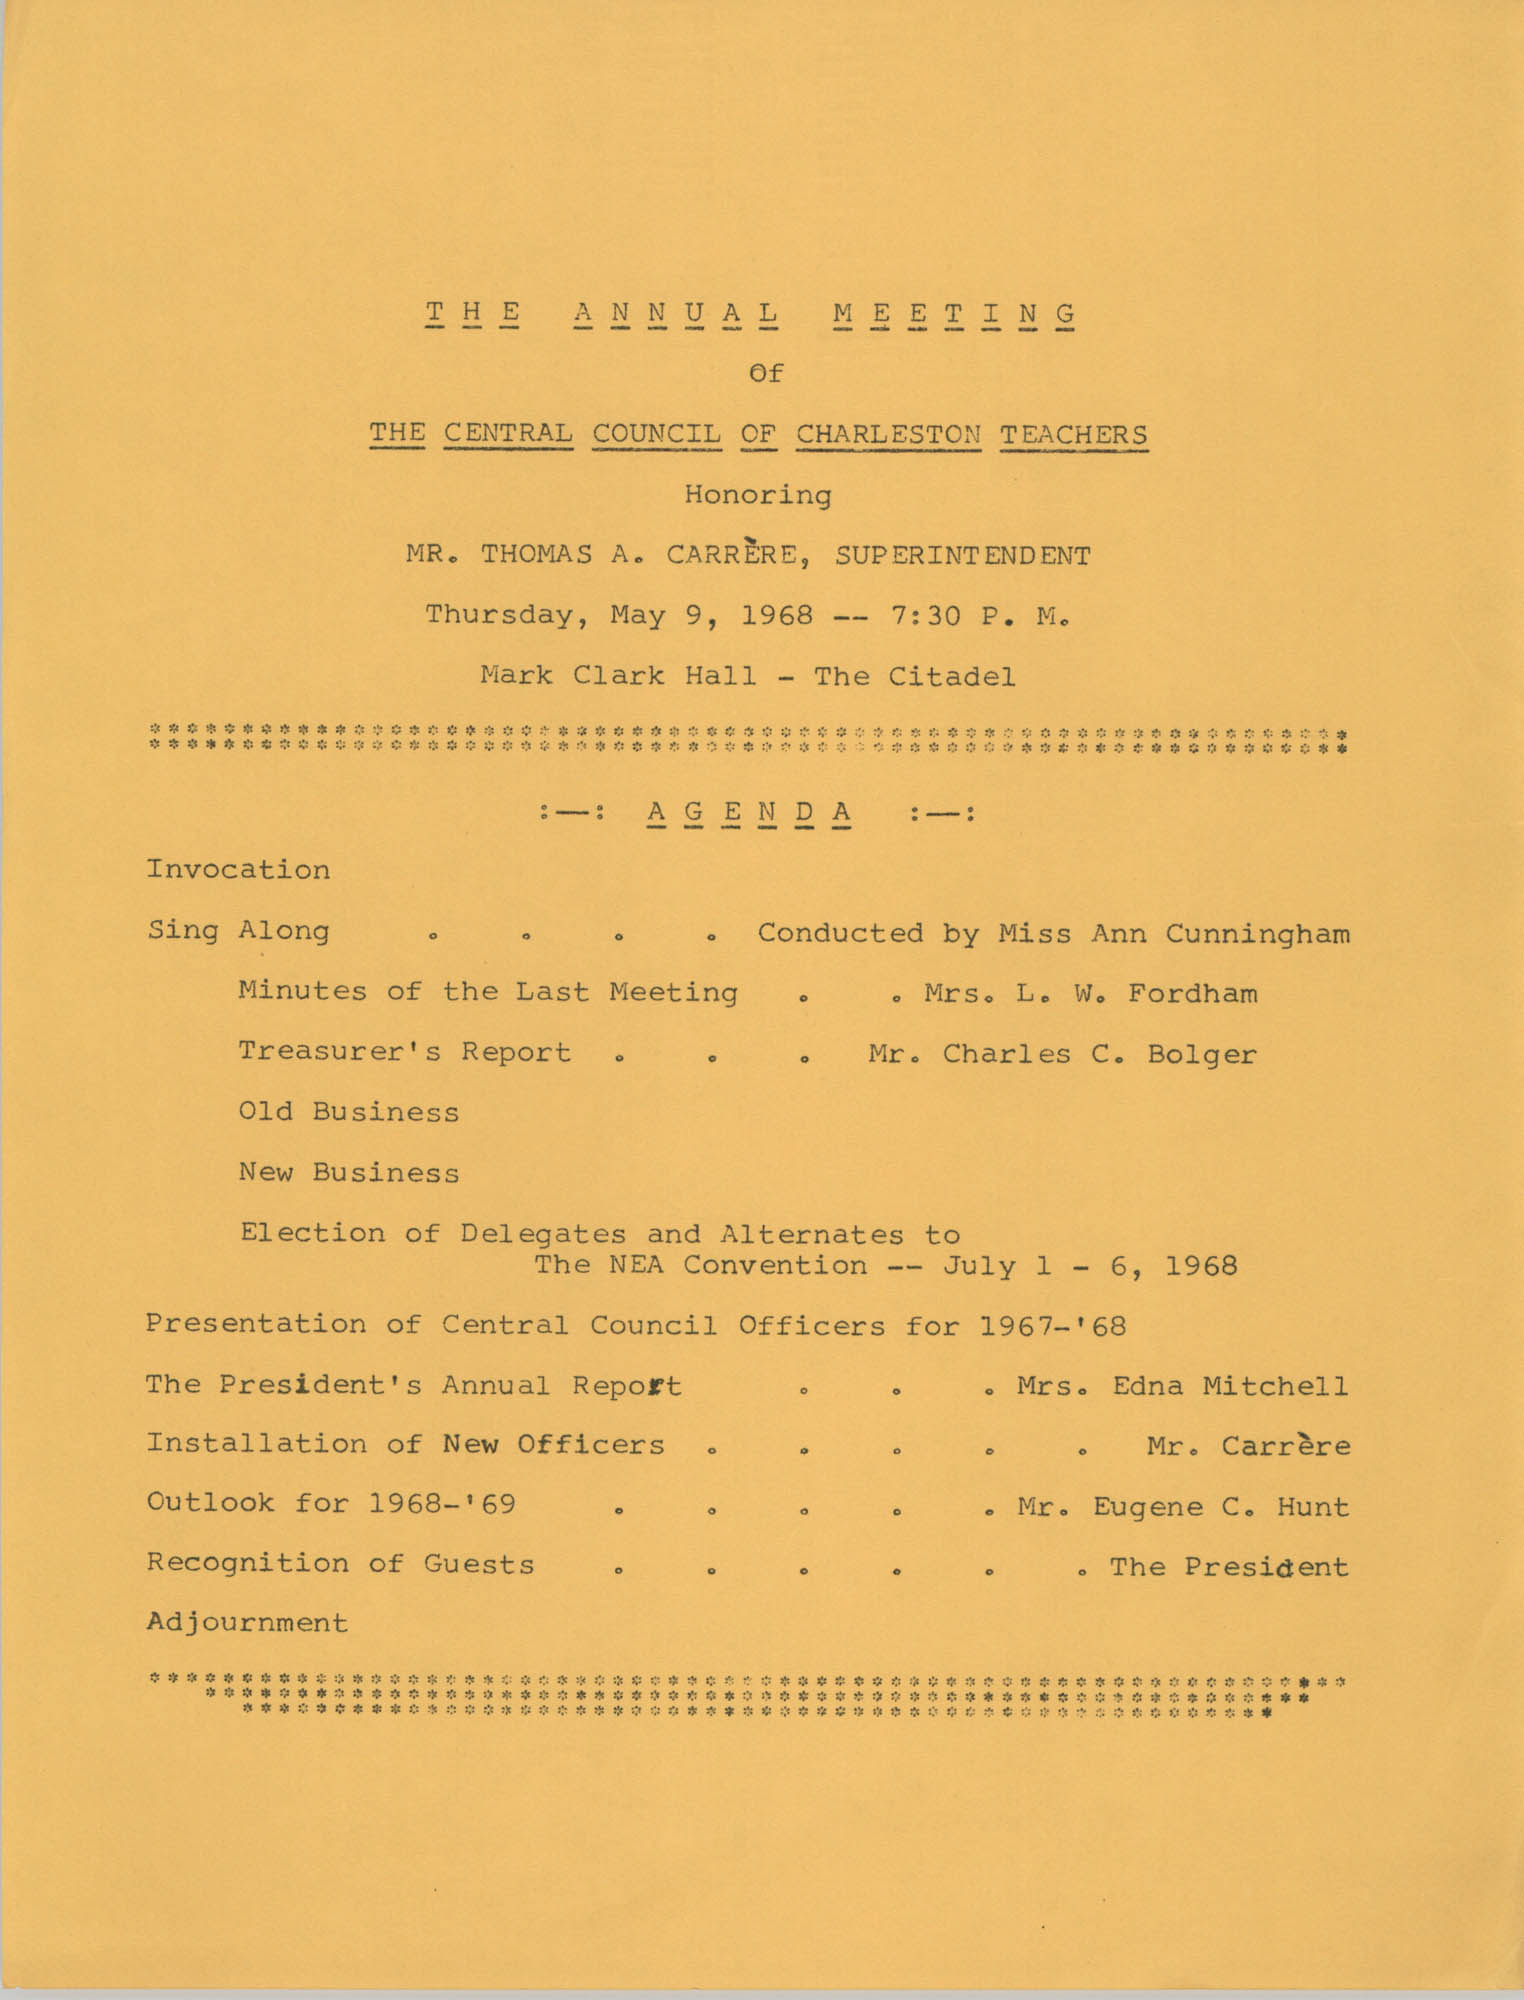 The Annual Meeting of The Central Council of Charleston Teachers, May 9, 1968